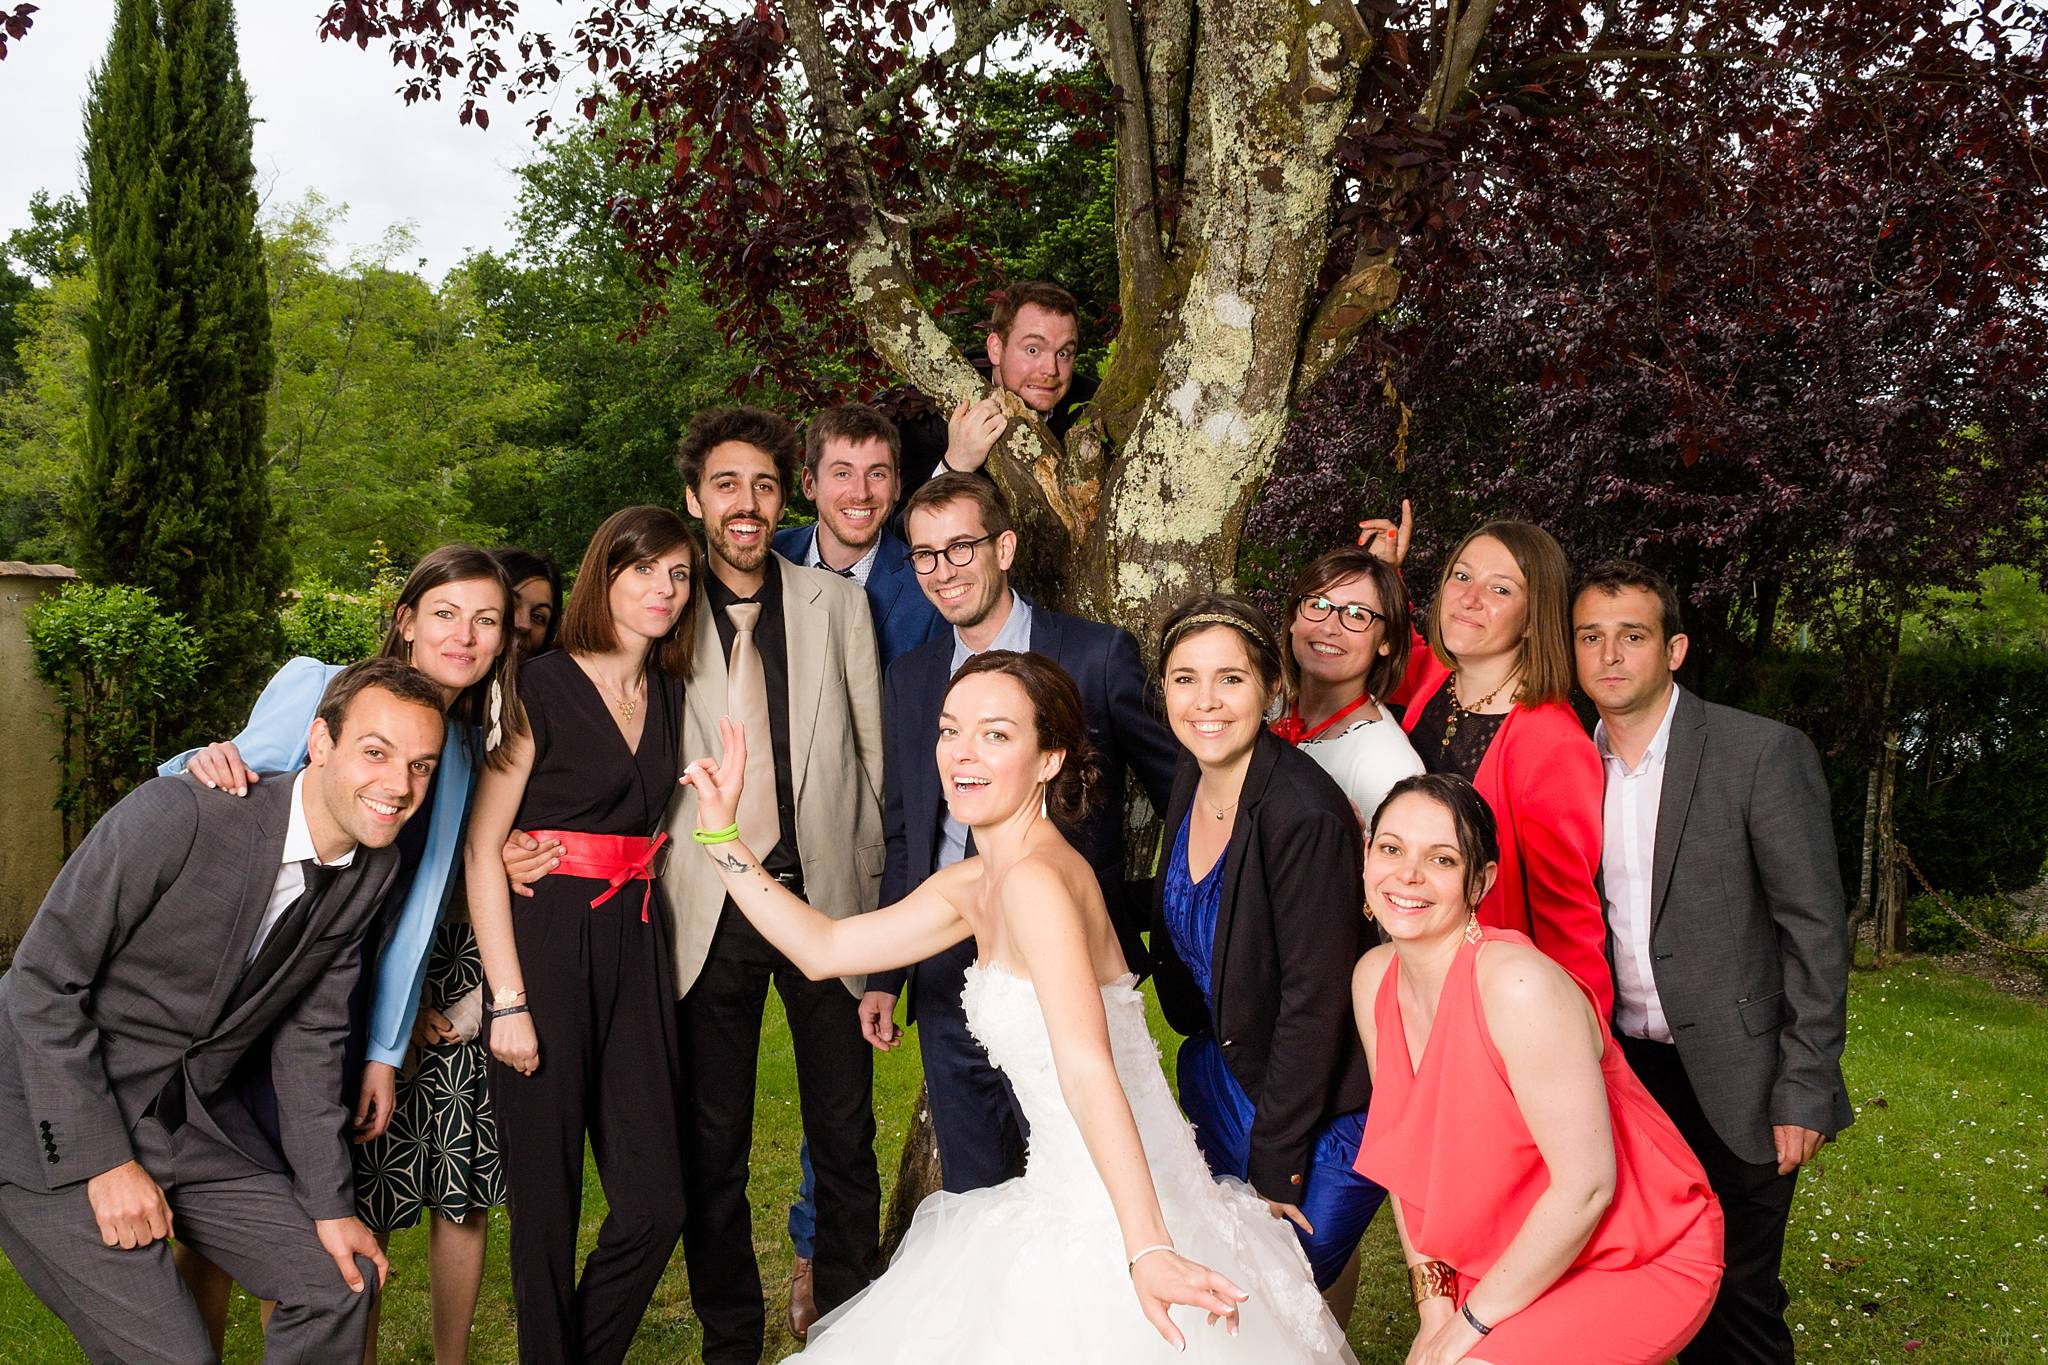 08_photobooth-mariage-bordeaux-gironde-dordogne-charentes-alexandre-roschewitz-photographies_2048px